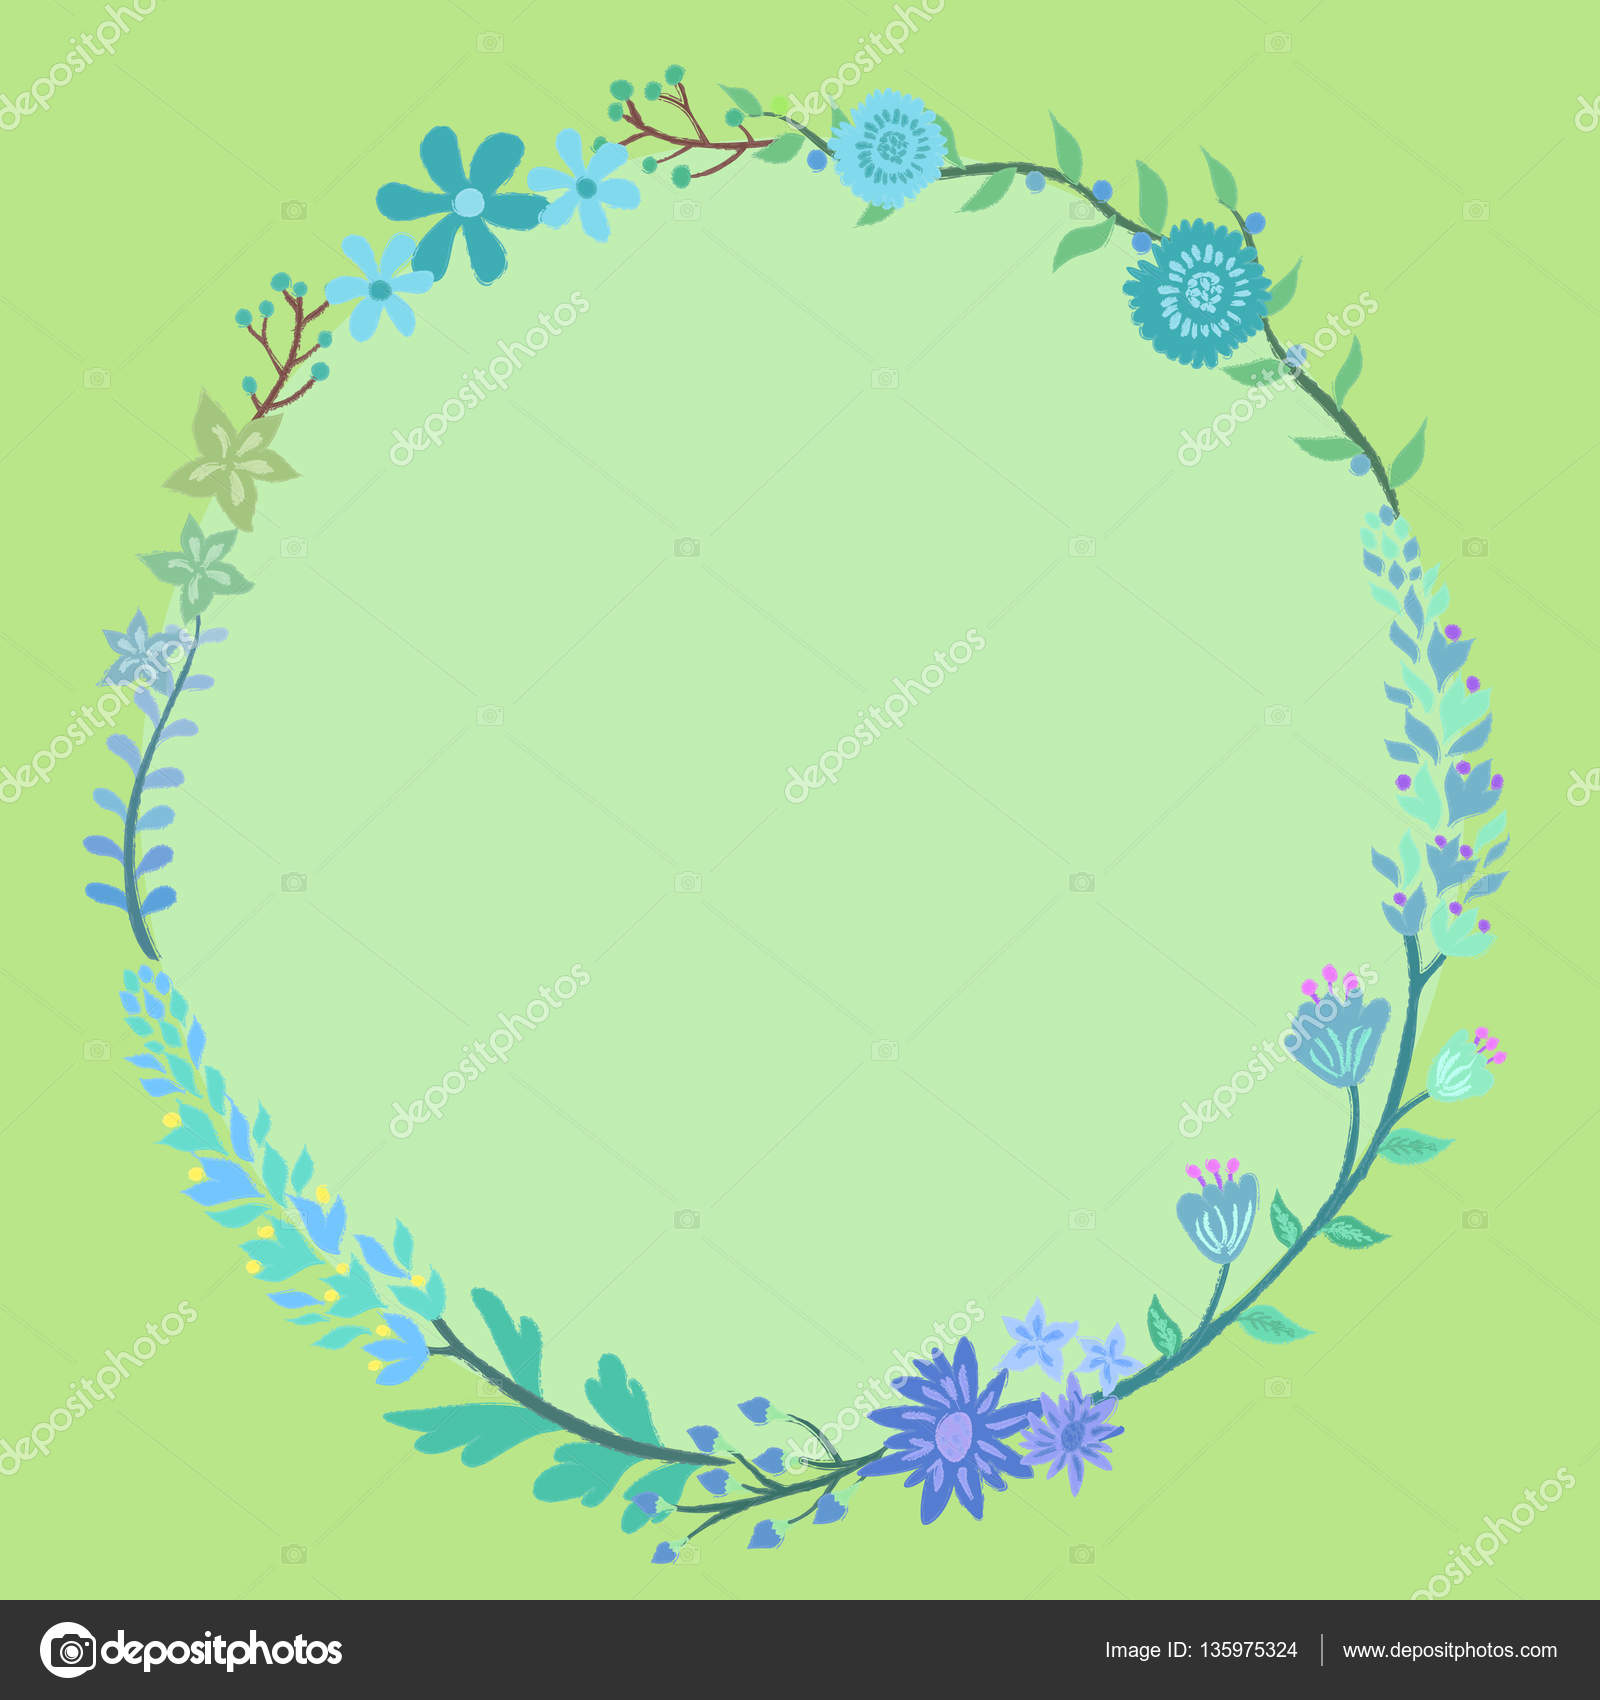 Blue flower wreath circle frame stock vector anitnov 135975324 blue flower wreath circle frame stock vector izmirmasajfo Gallery